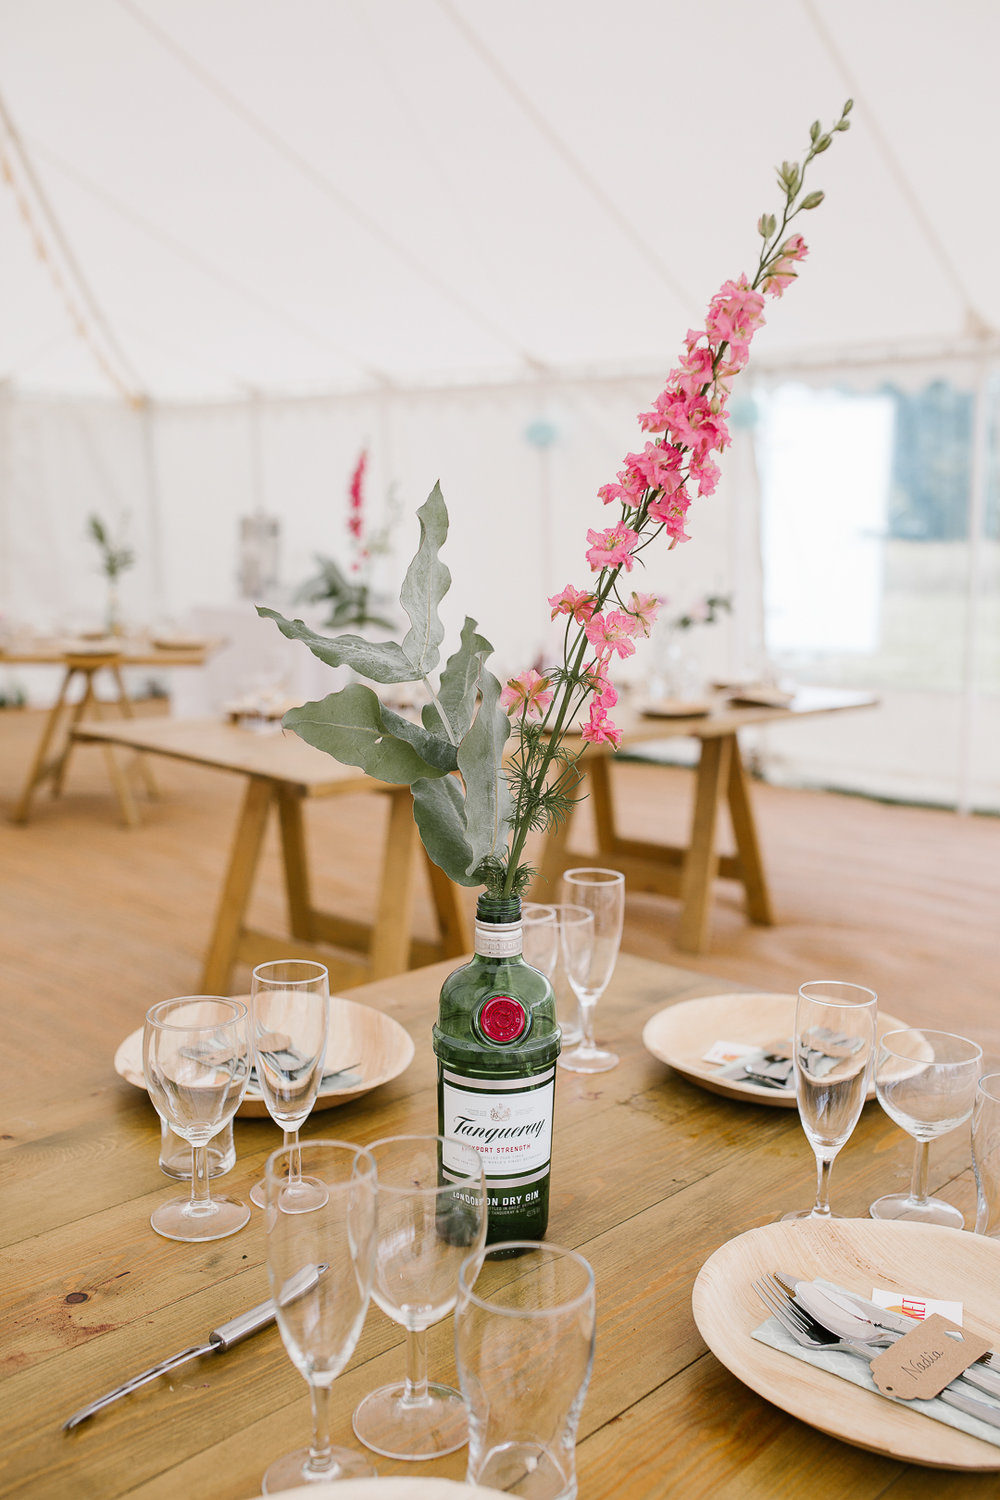 gin bottle holding wild flowers as the table centrepiece at the DIY wedding in the Cotswolds